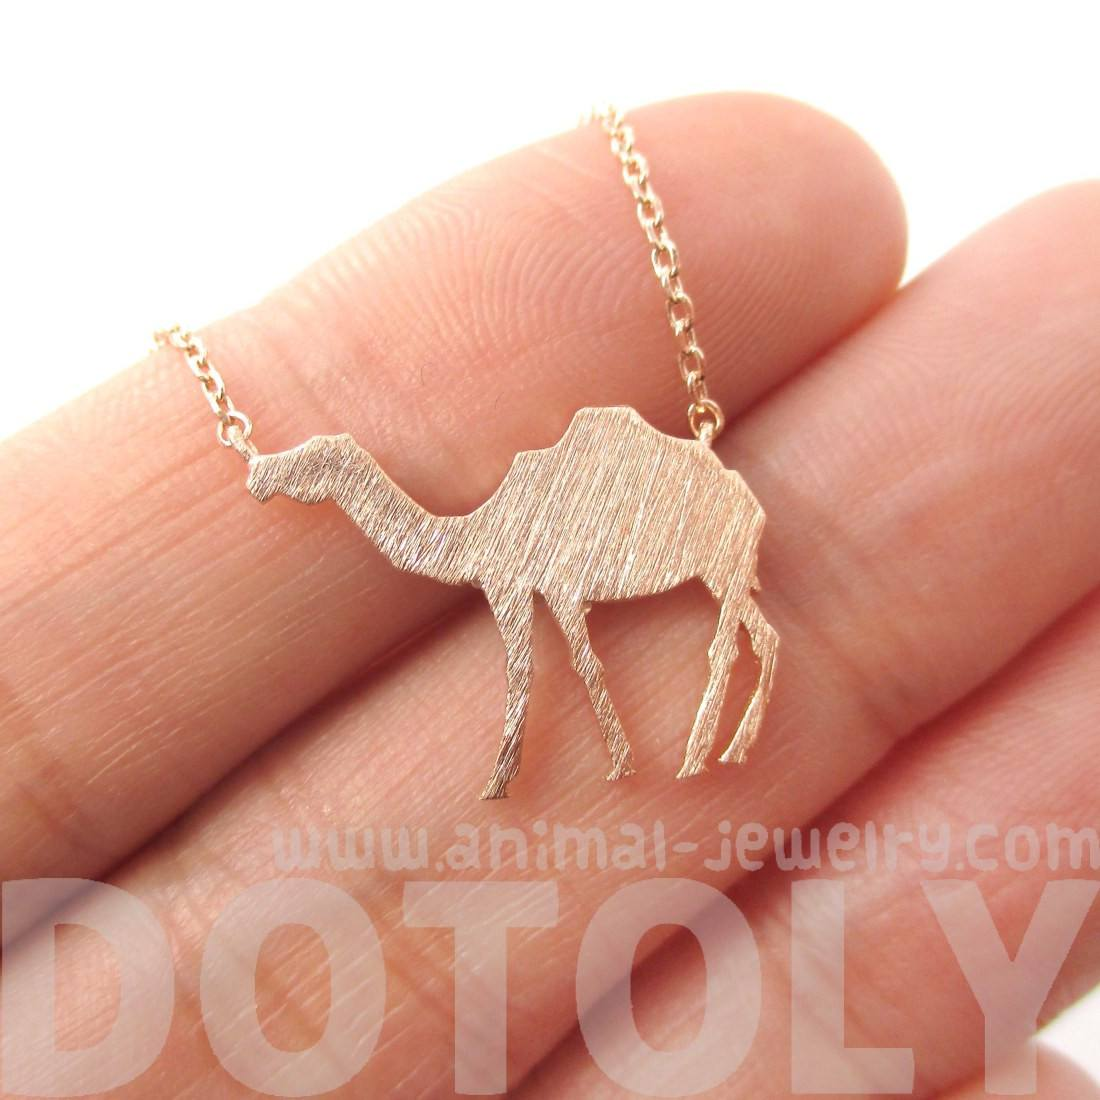 Camel Silhouette Shaped Pendant Necklace in Rose Gold